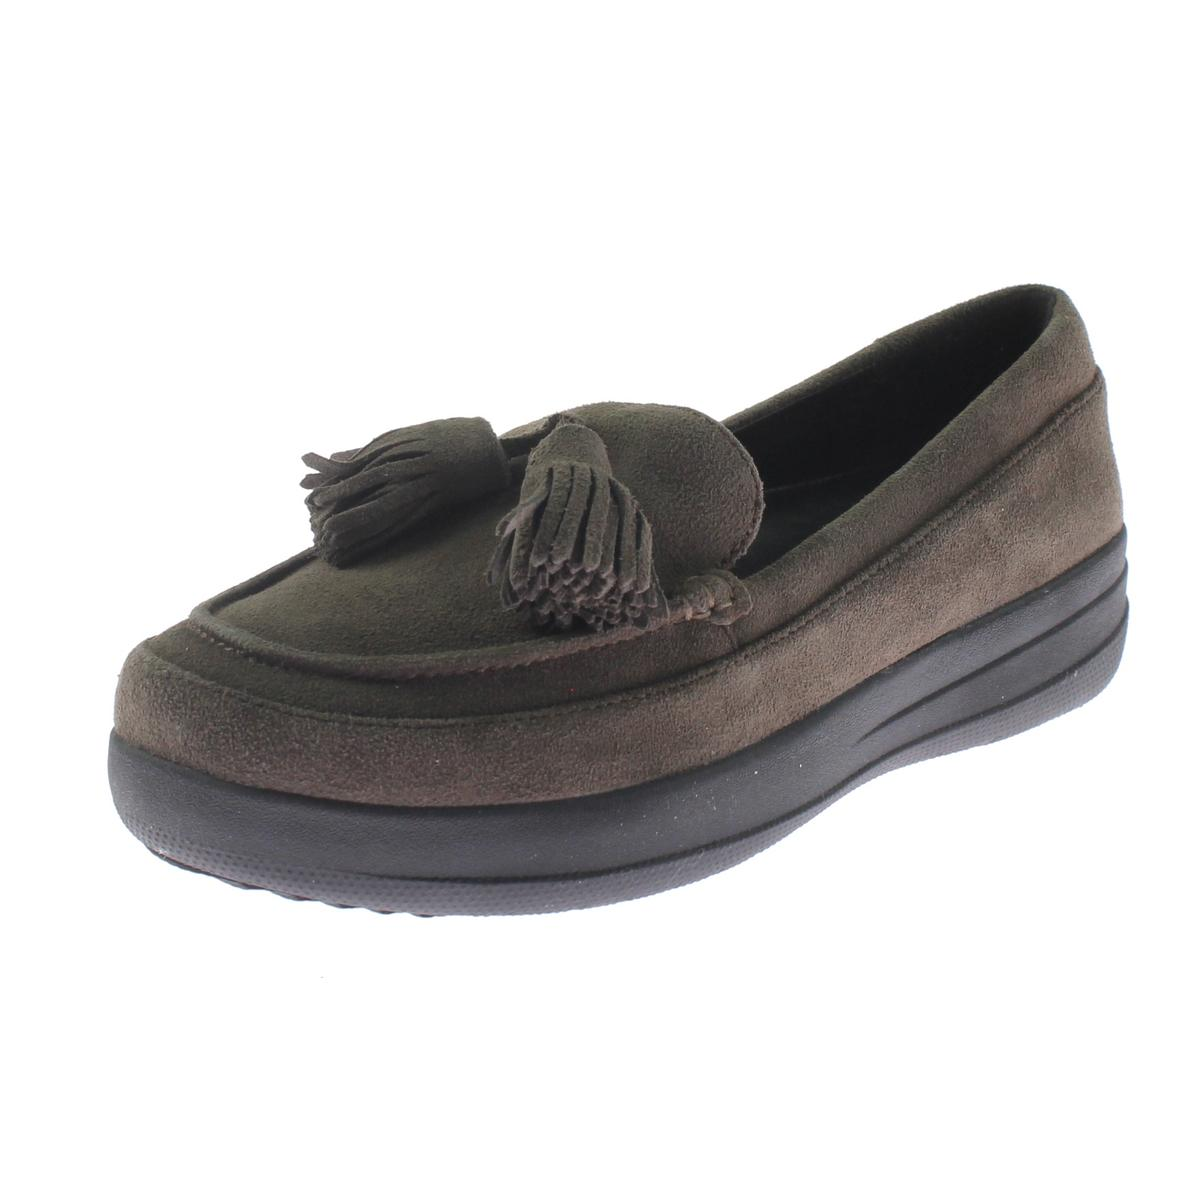 Fitflop Womens Suede Tassel Fashion Loafers